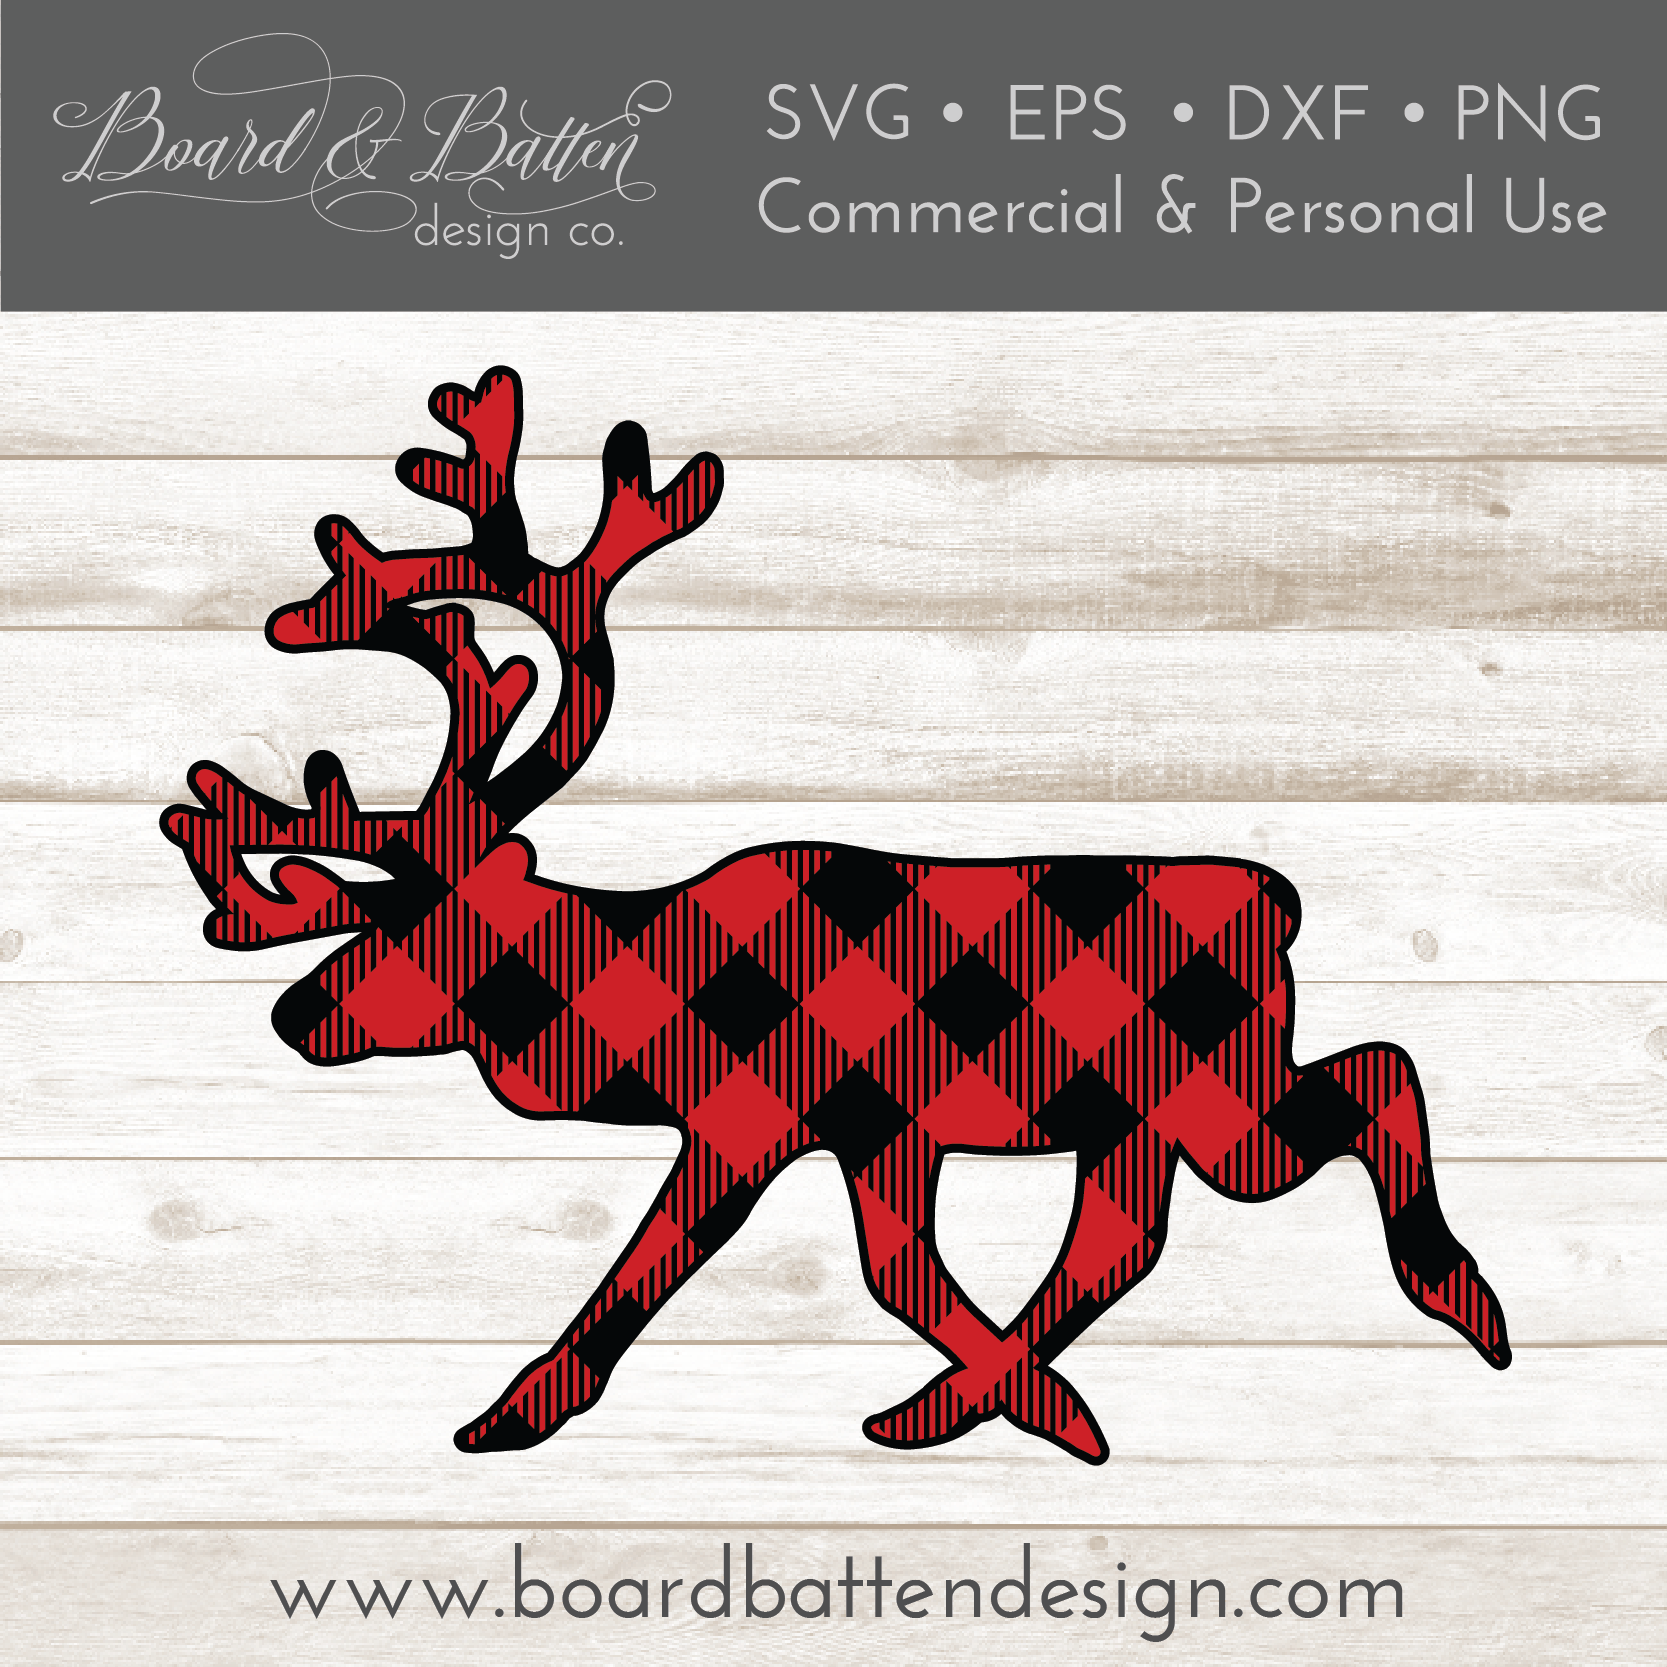 Buffalo Plaid Reindeer Shape Layered SVG - Commercial Use SVG Files